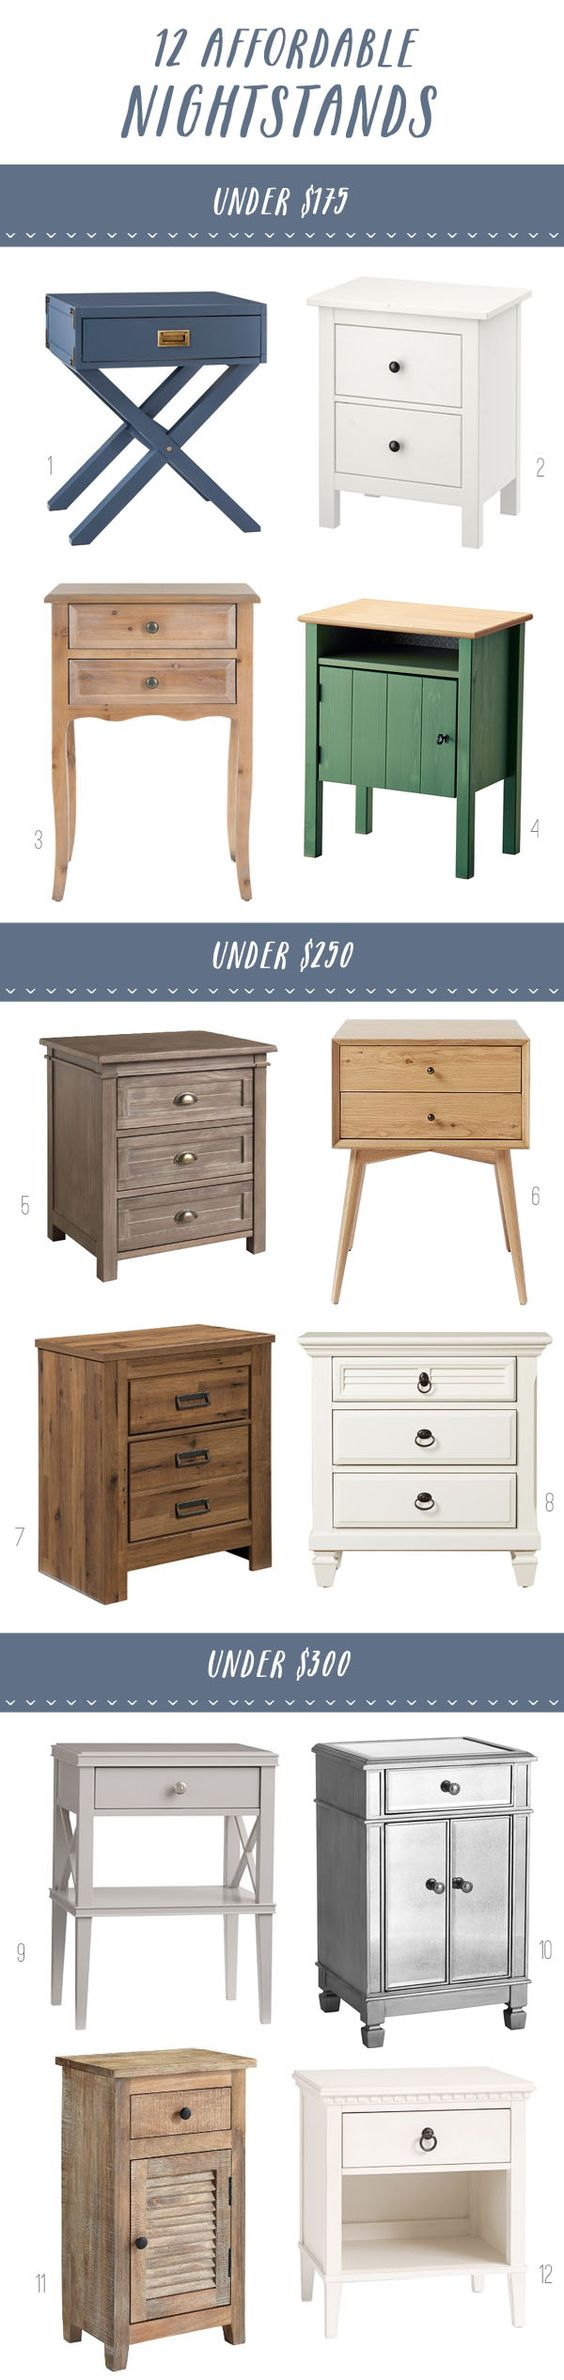 12 Affordable Nightstands - Nightstands under 300 - The Inspired Room